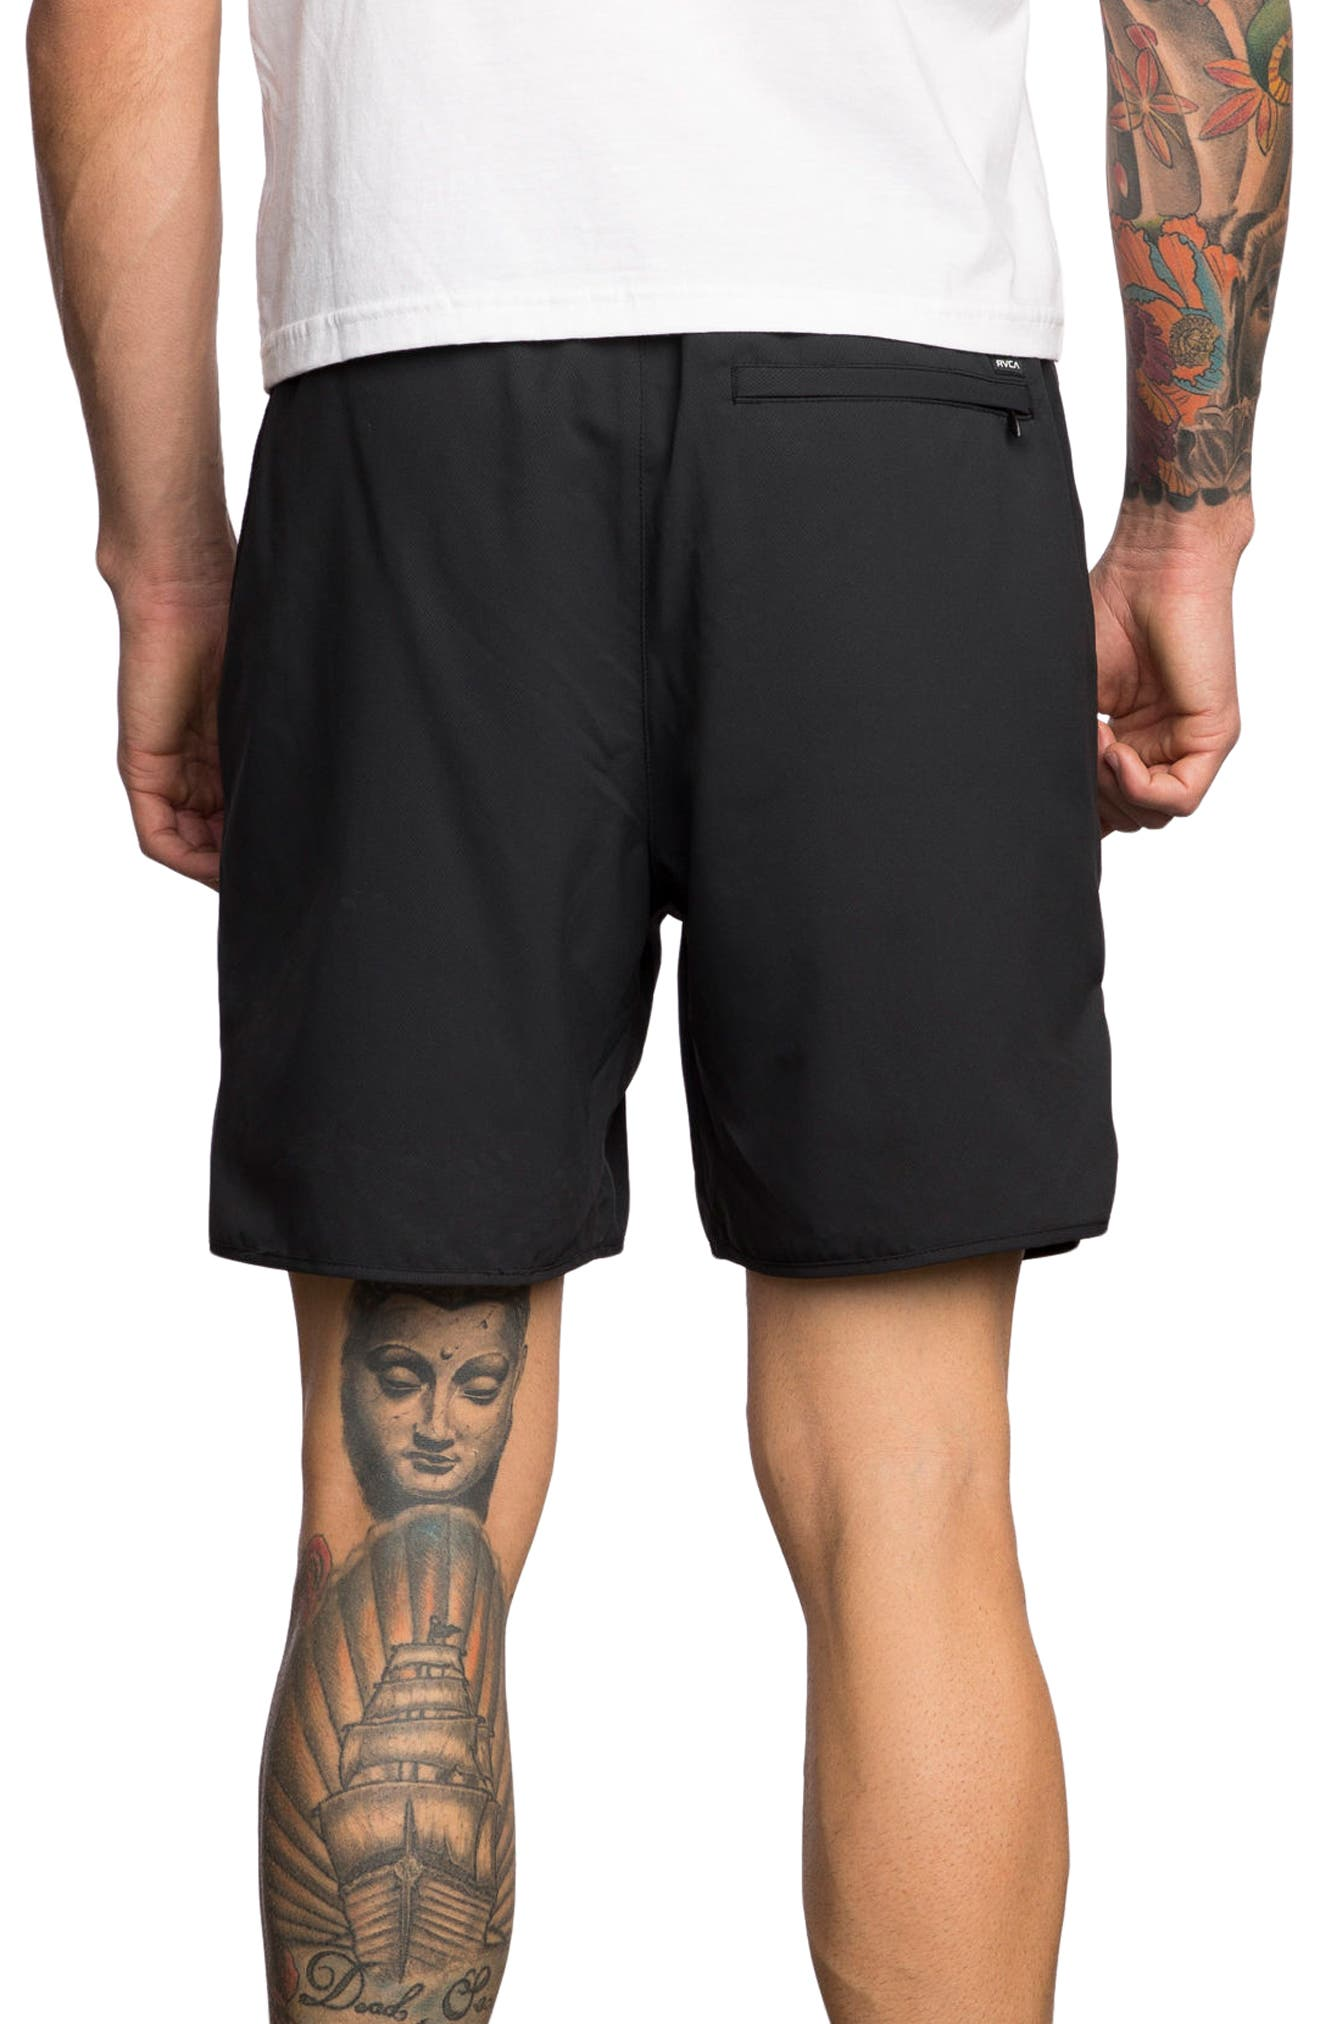 Yogger III Athletic Shorts,                             Alternate thumbnail 2, color,                             Black